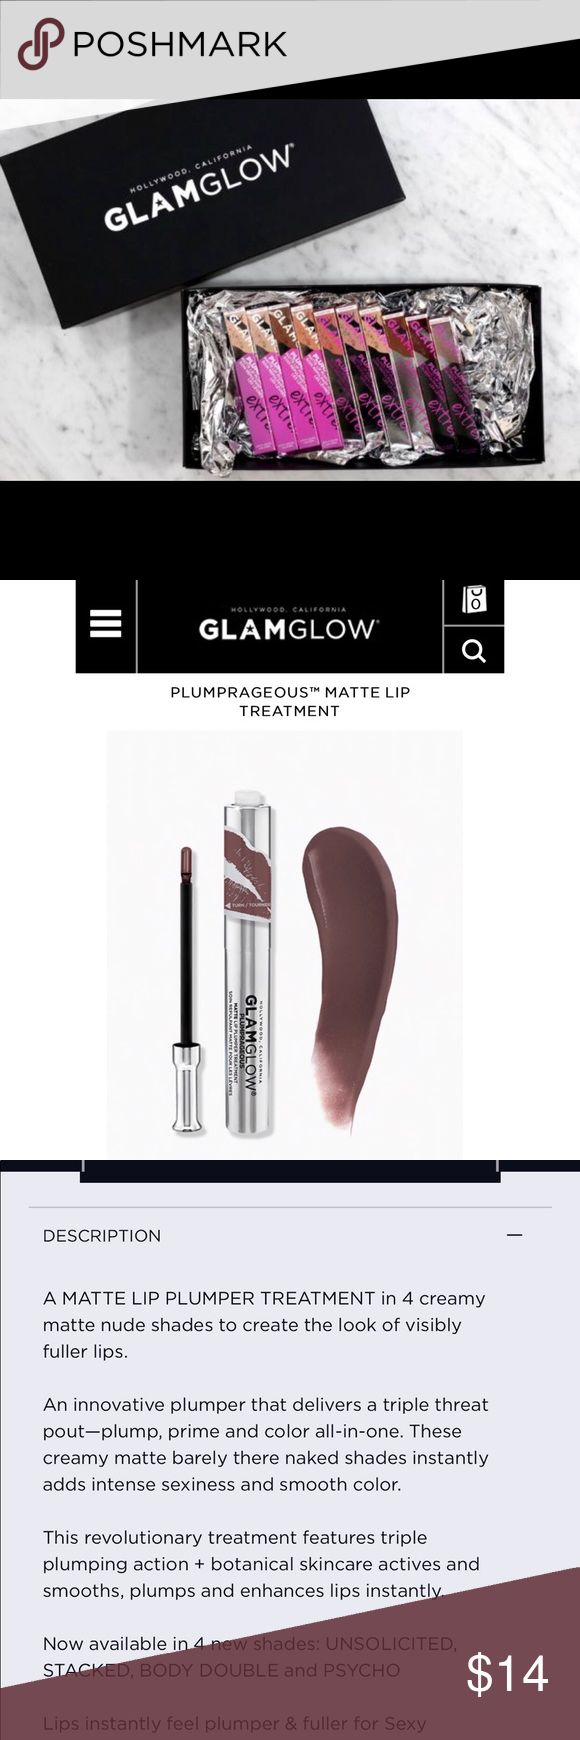 "Glamglow plumprageous matte lip plumper This tingly, mint lippy is awesome for perfect lips (without filler!), SHHHH 🤫I love the tingle when you apply & this REALLY makes a difference, your lips WILL be fatter! & this color! ""psycho"", is a sheer, nude-brown matte that looks gorgeous on anyone! Lasts due to intensified pigment. The applicator is AMAZING, use it over anything! trying is believing! You won't be disappointed w/glamglow! NEW/UNUSED/FULL SIZE. price FIRM unless…"